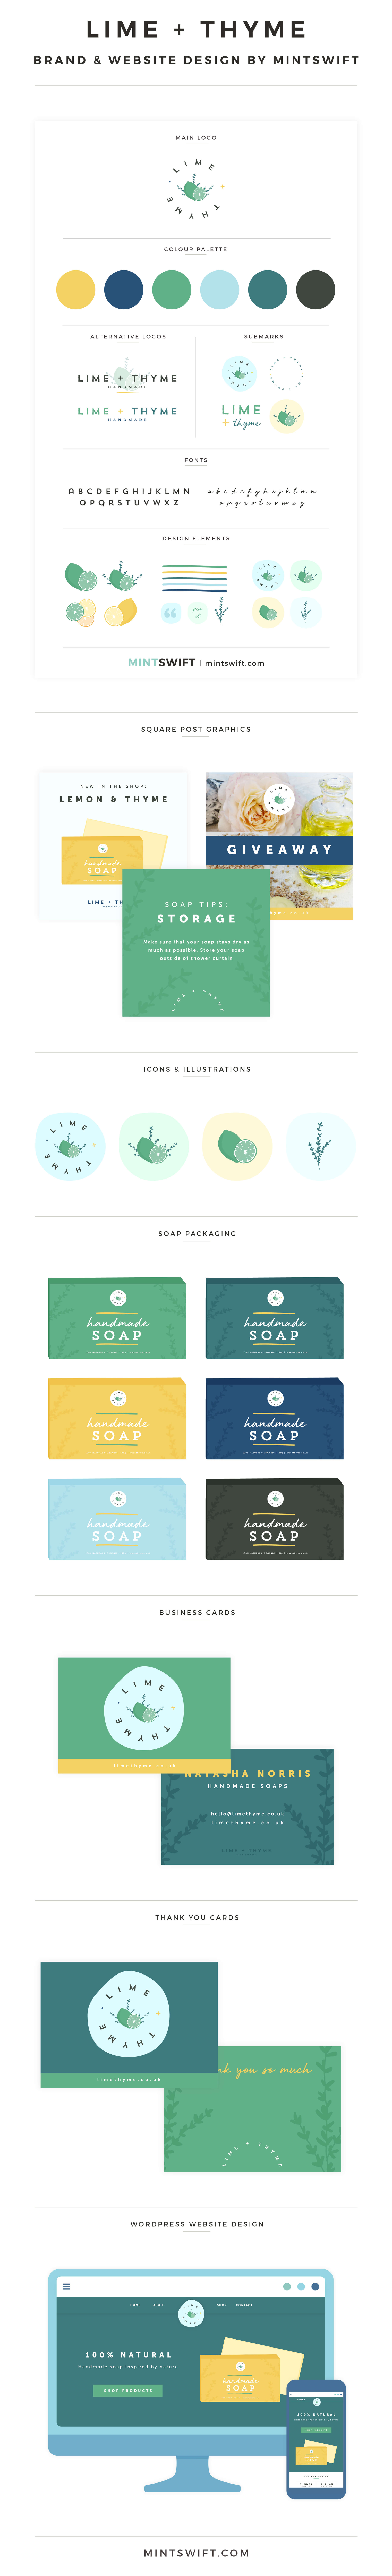 Lime + Thyme - Brand & Website Design by MintSwift